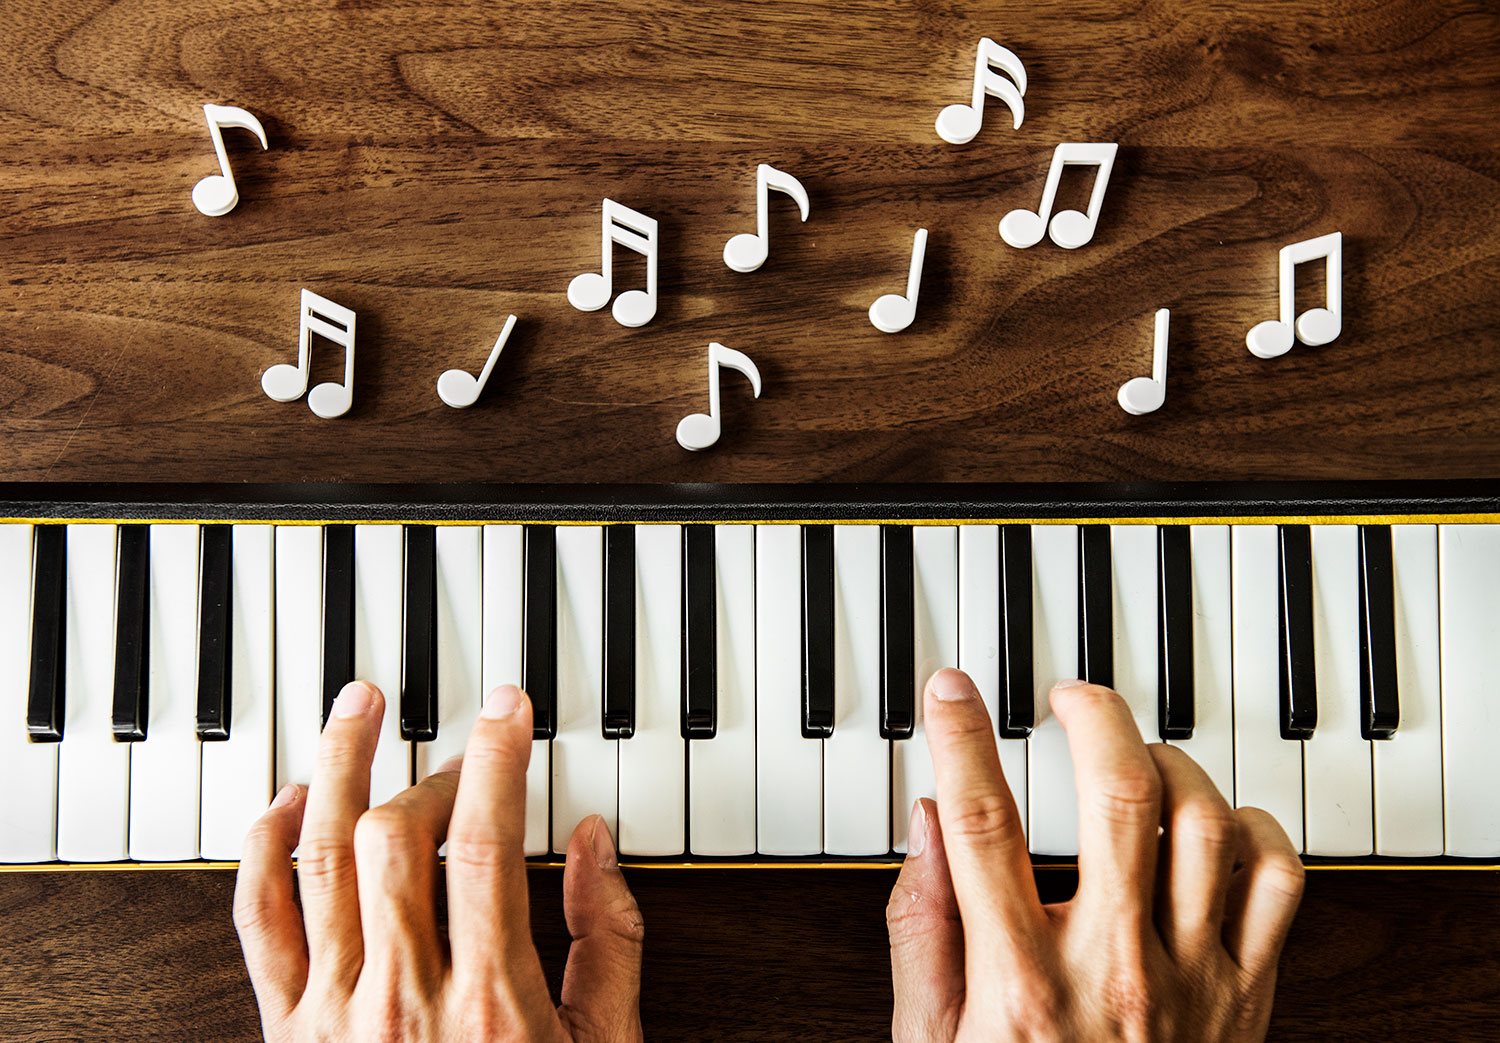 envato elements adds royalty free music and sound effects